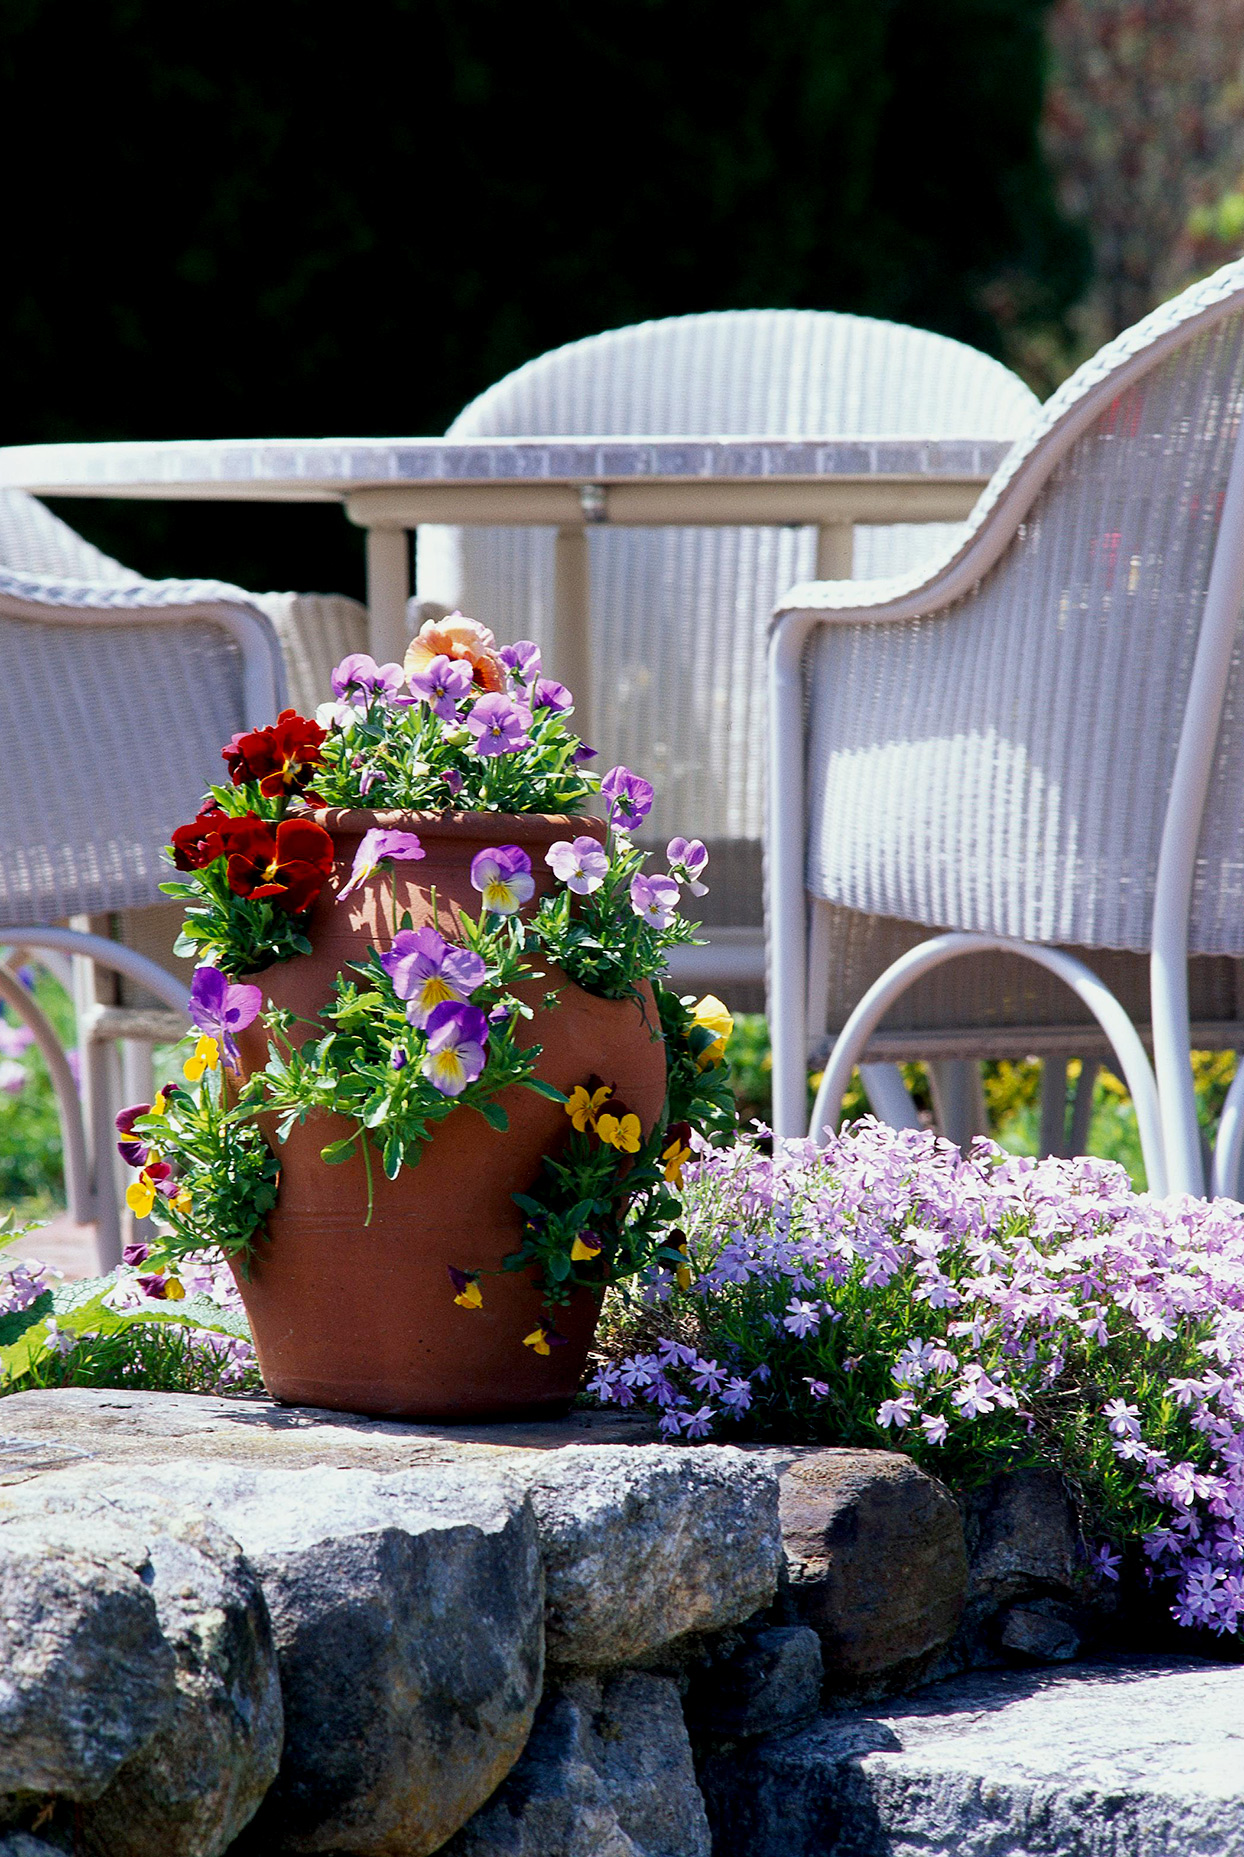 One planter with flower variety white lawn furniture